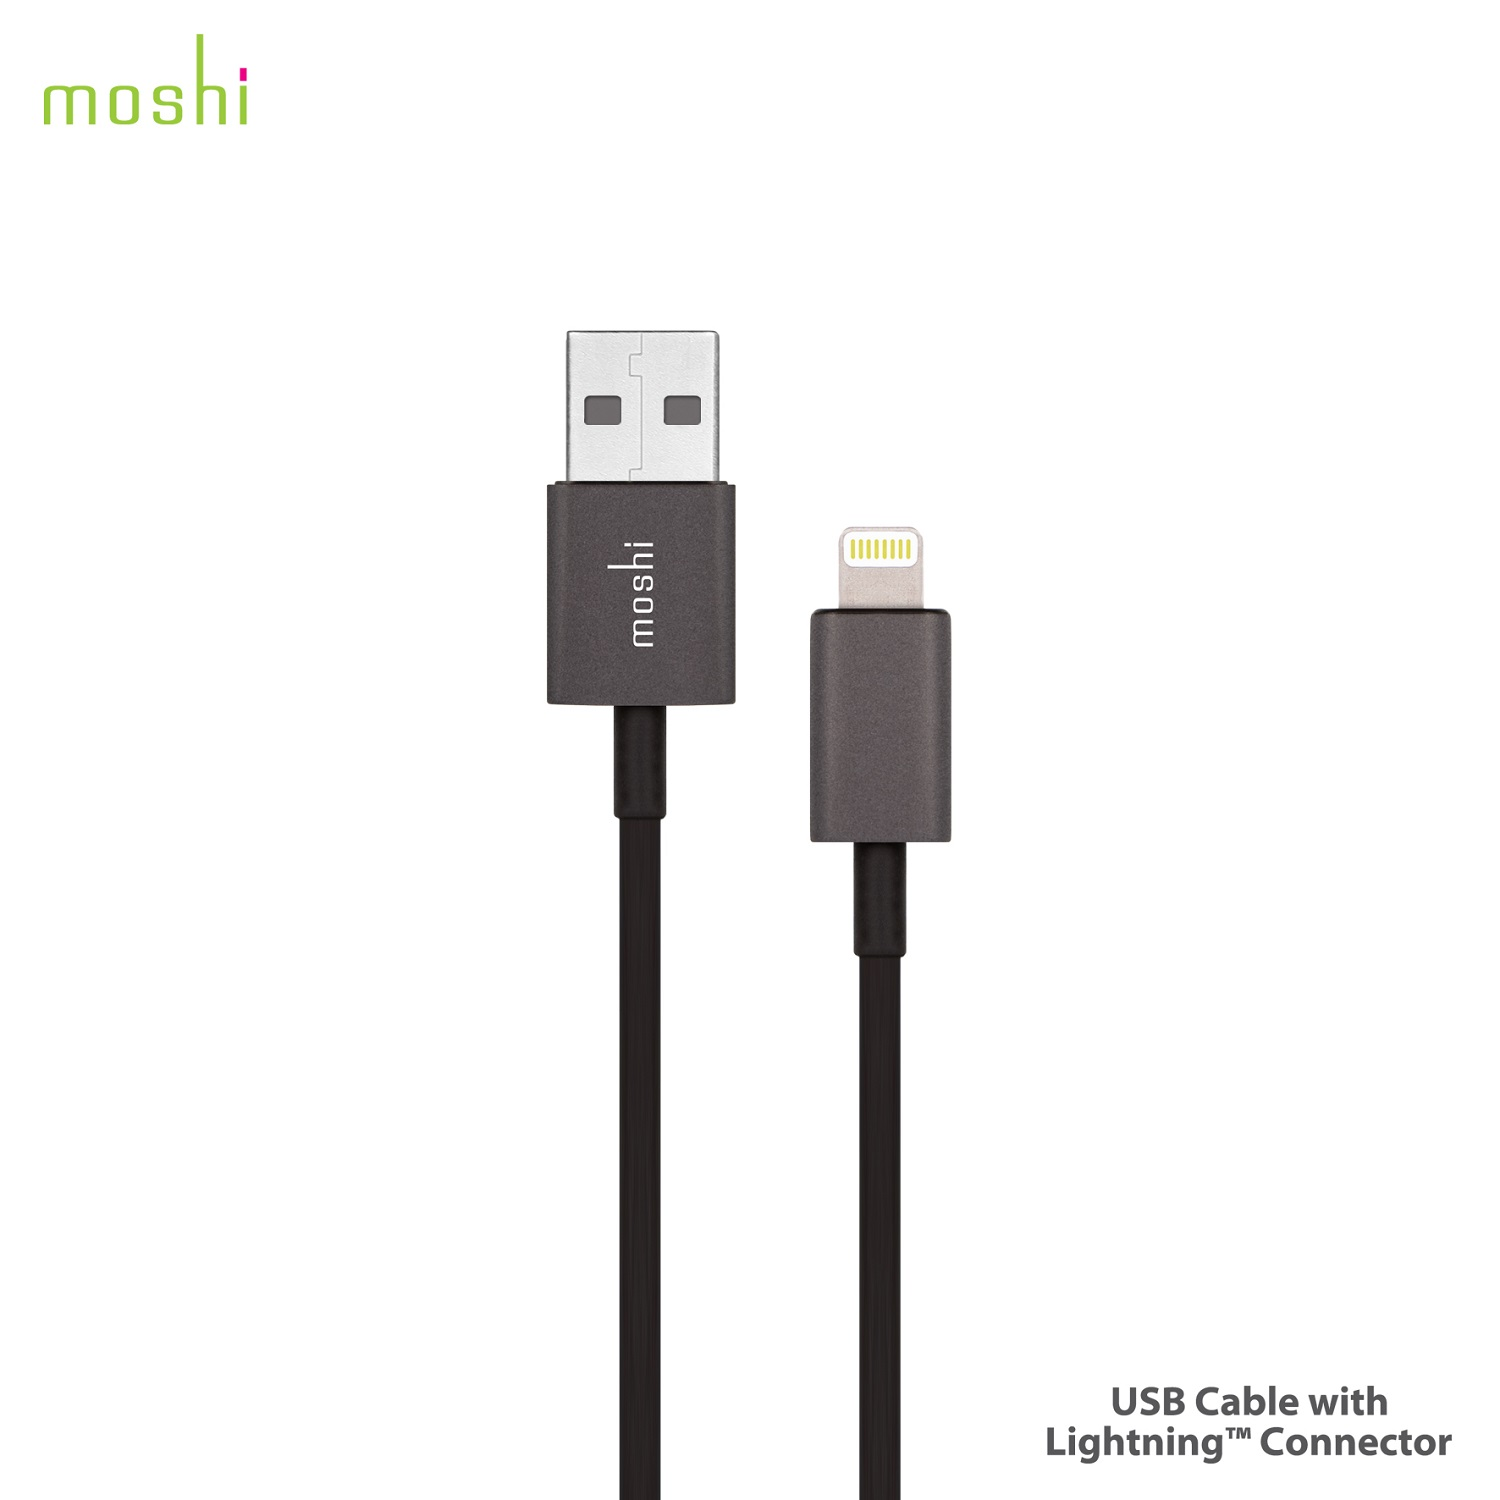 Moshi Lightning Cable